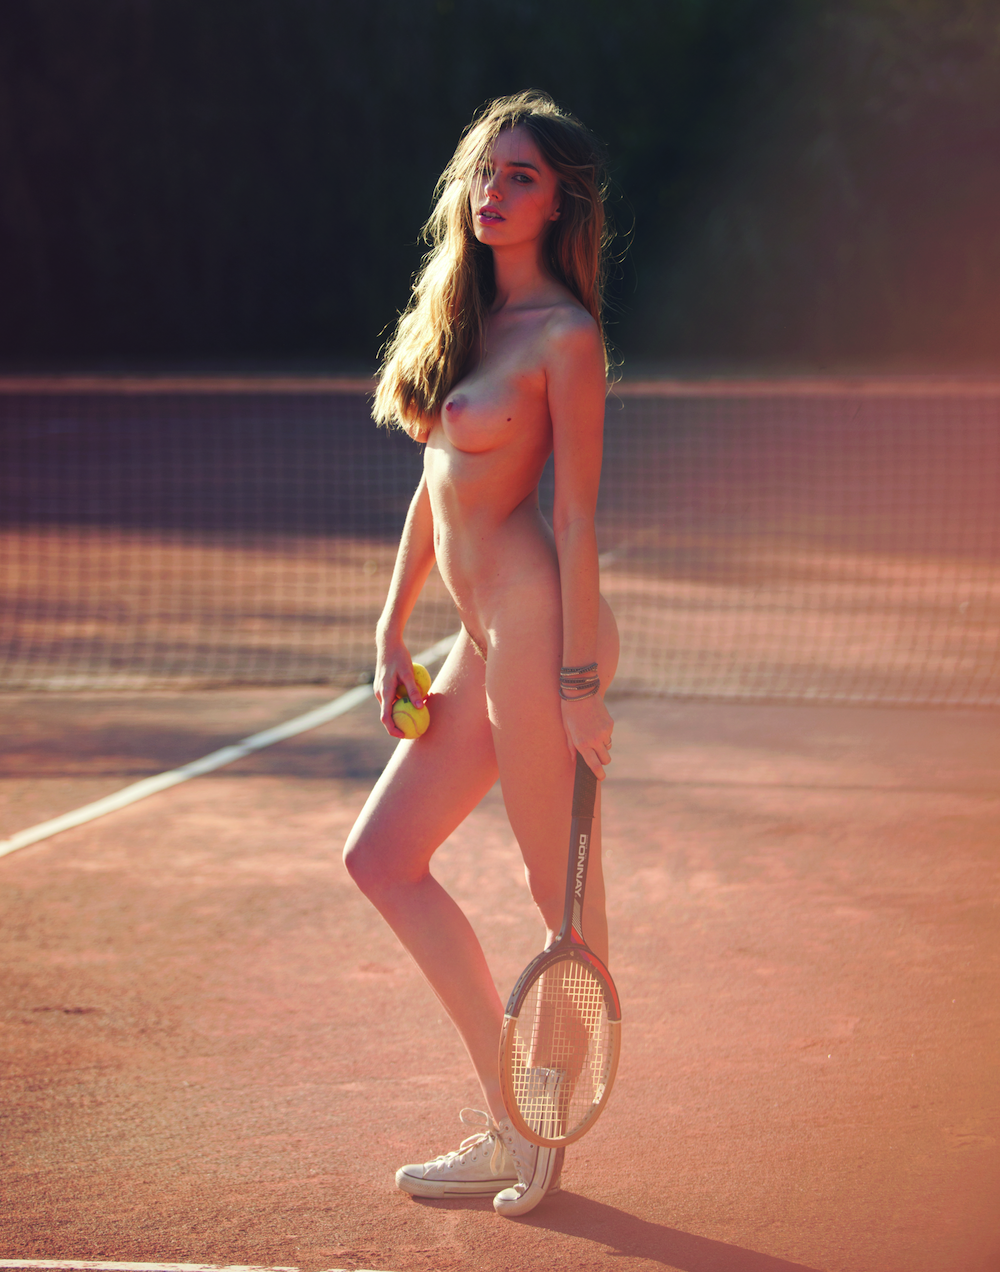 anthea page,david bellemere,nude,tennis,naked